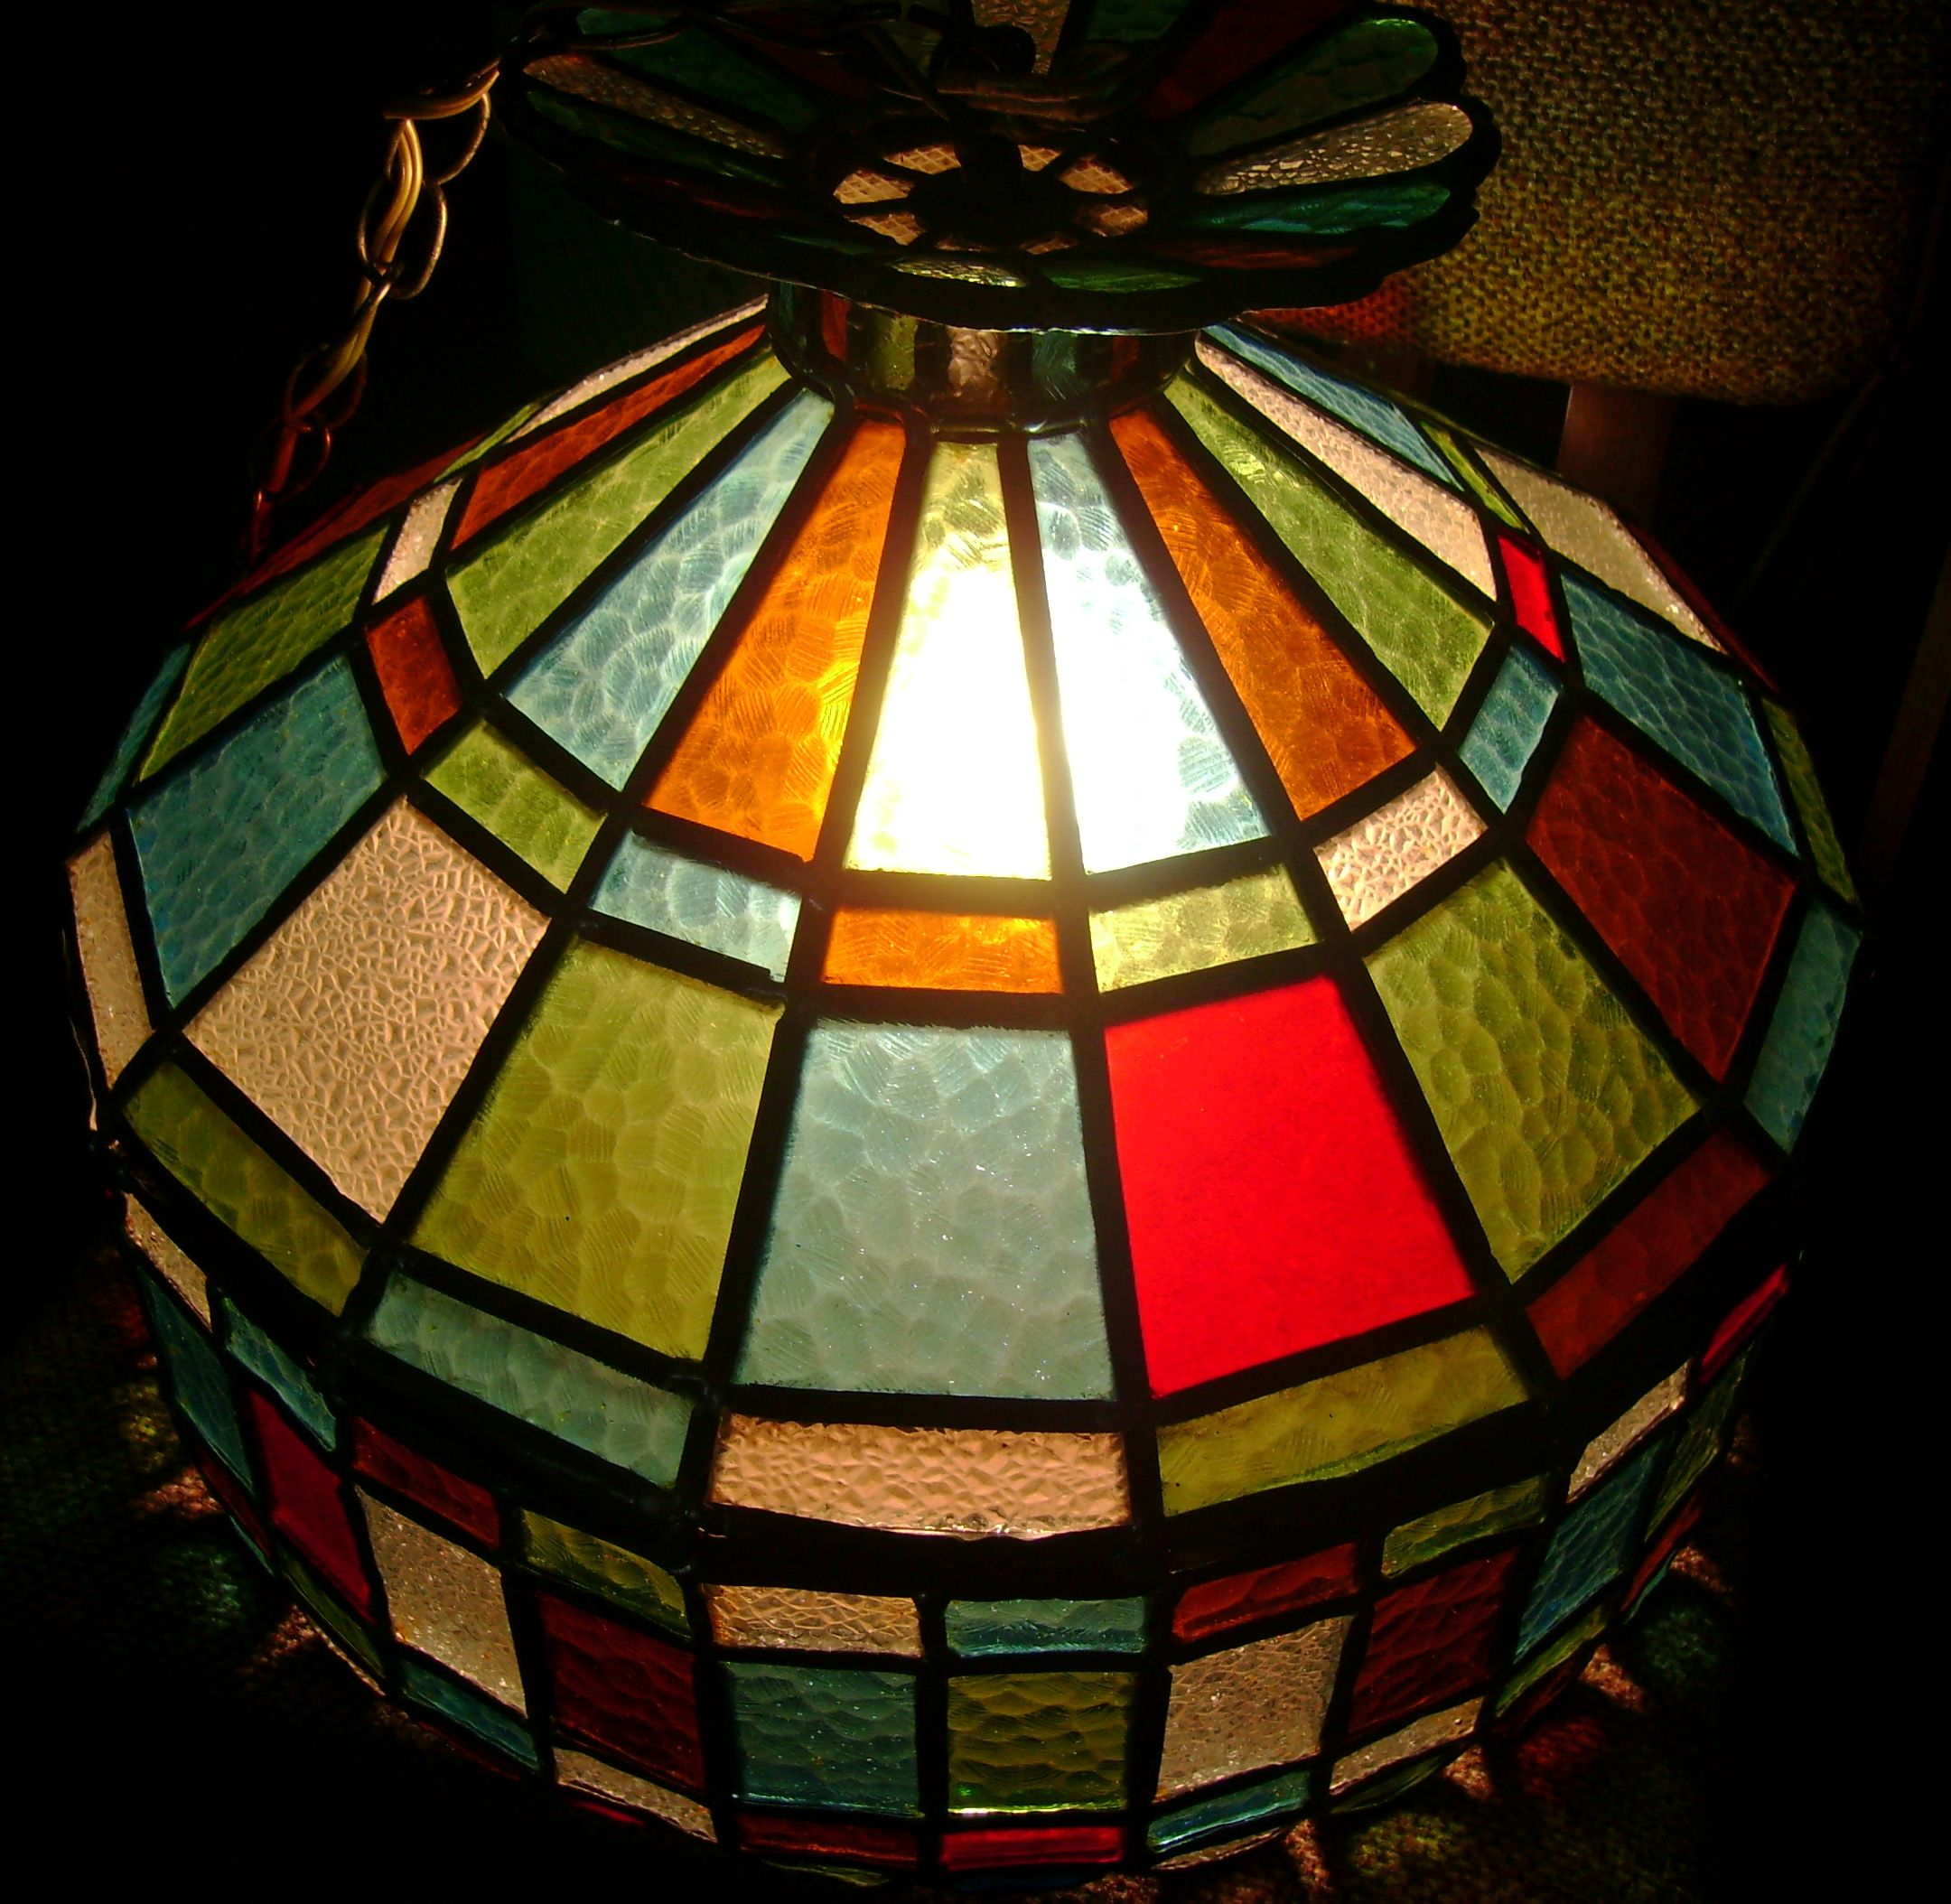 stained glass light fixture just yesterday pinterest. Black Bedroom Furniture Sets. Home Design Ideas